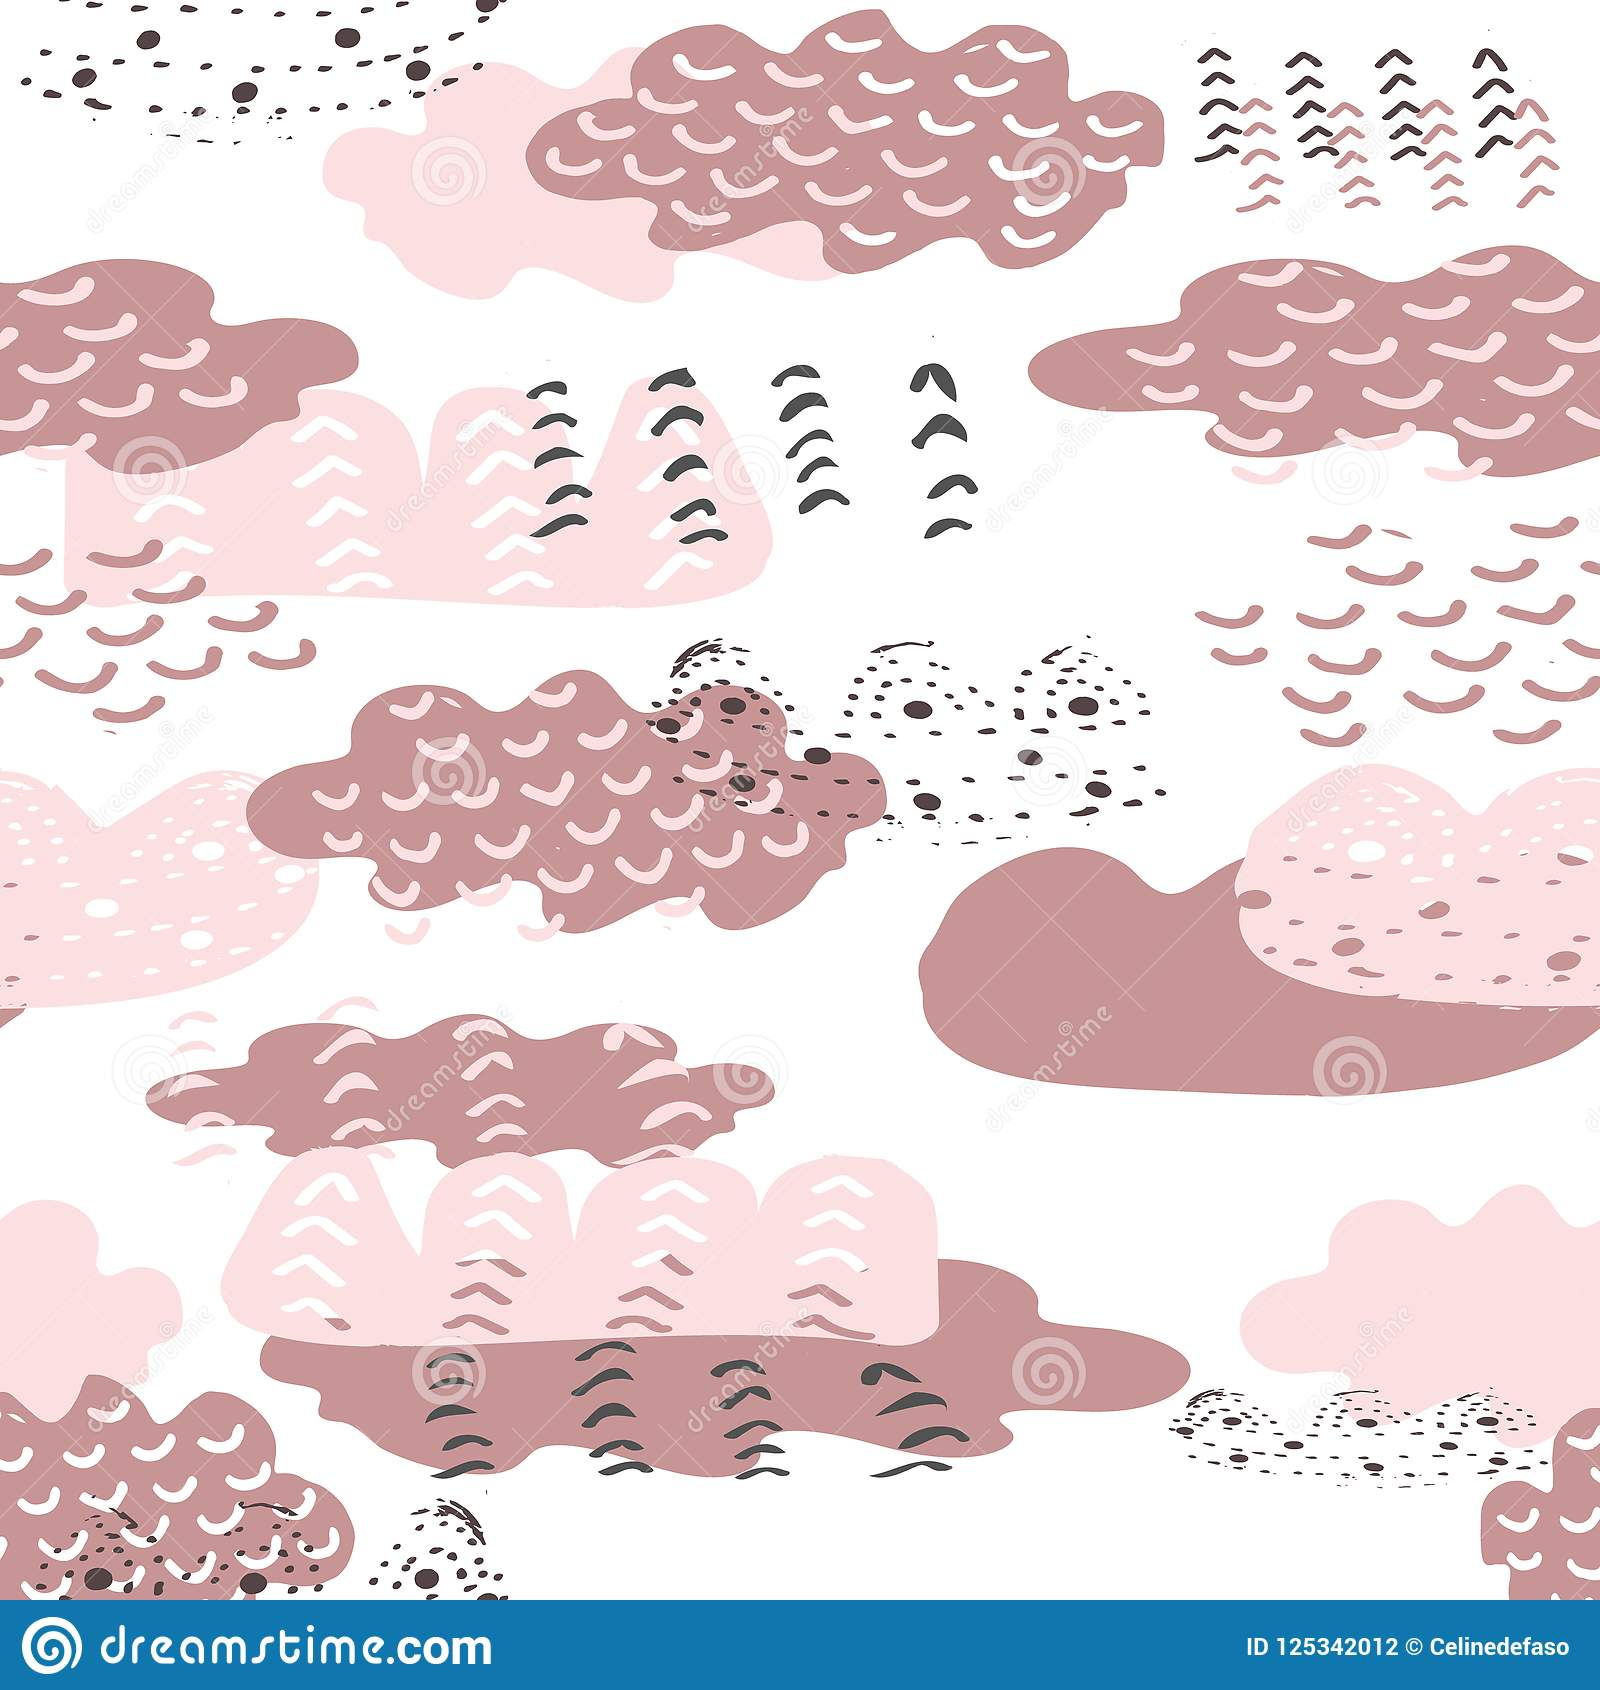 Vector hand drawn doodle pink clouds seamless repeat pattern background. Perfect for kids apparel, fabric, home decor and furnishi